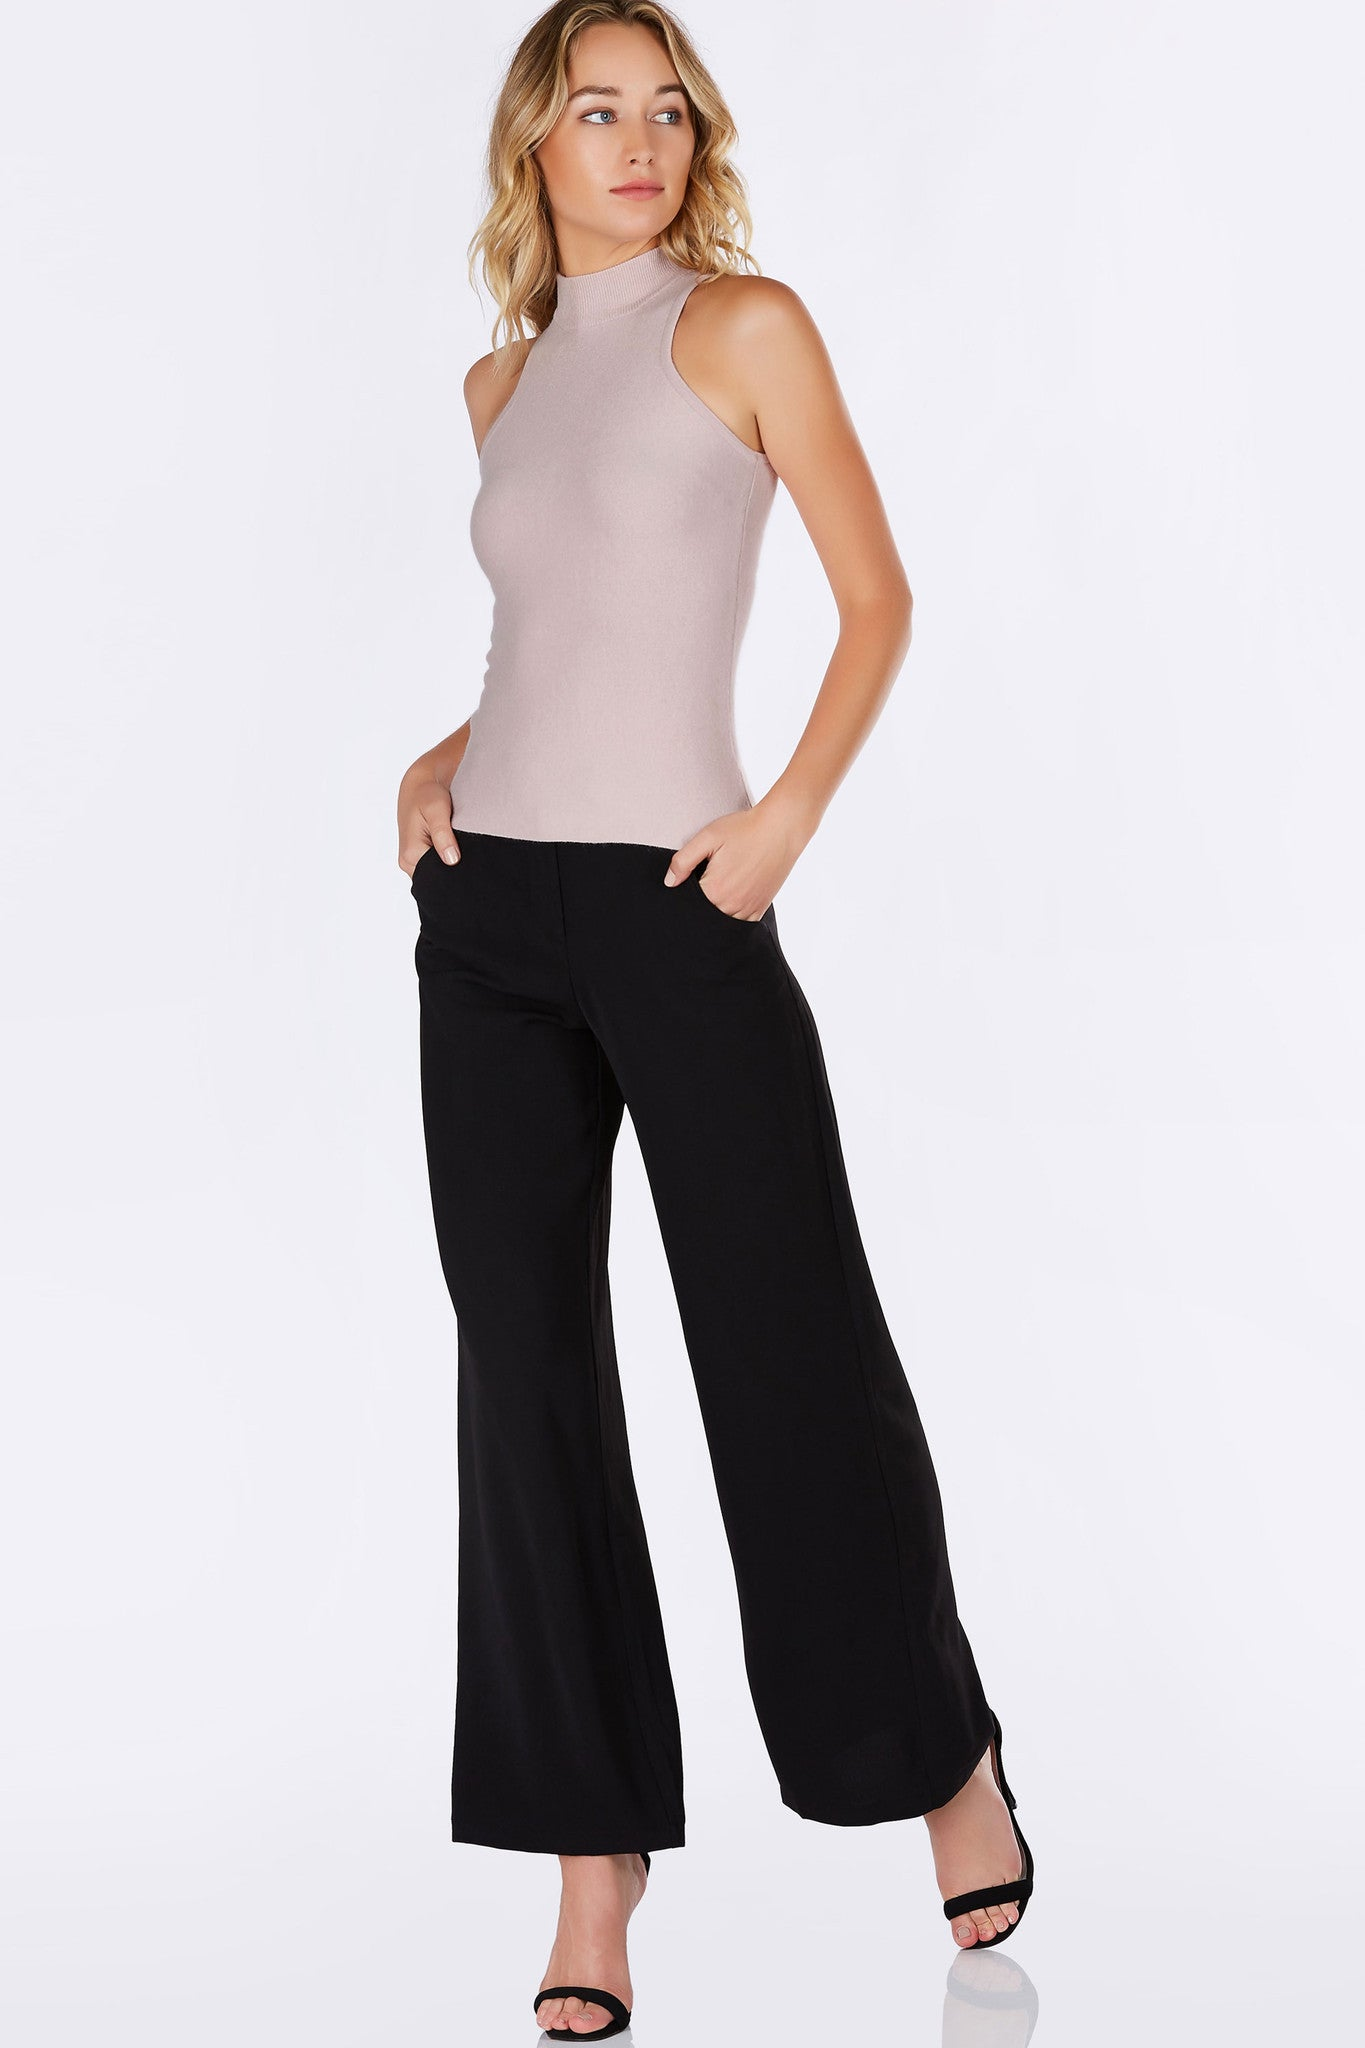 A great transitional piece to have in your wardrobe. Flattering mock neck with a comfortable slim fit. Cozy blend of materials feel incredibly soft against the skin. Exposed zipper in back for closure and added detail. Pair with skinny jeans and pumps for a chic outfit.